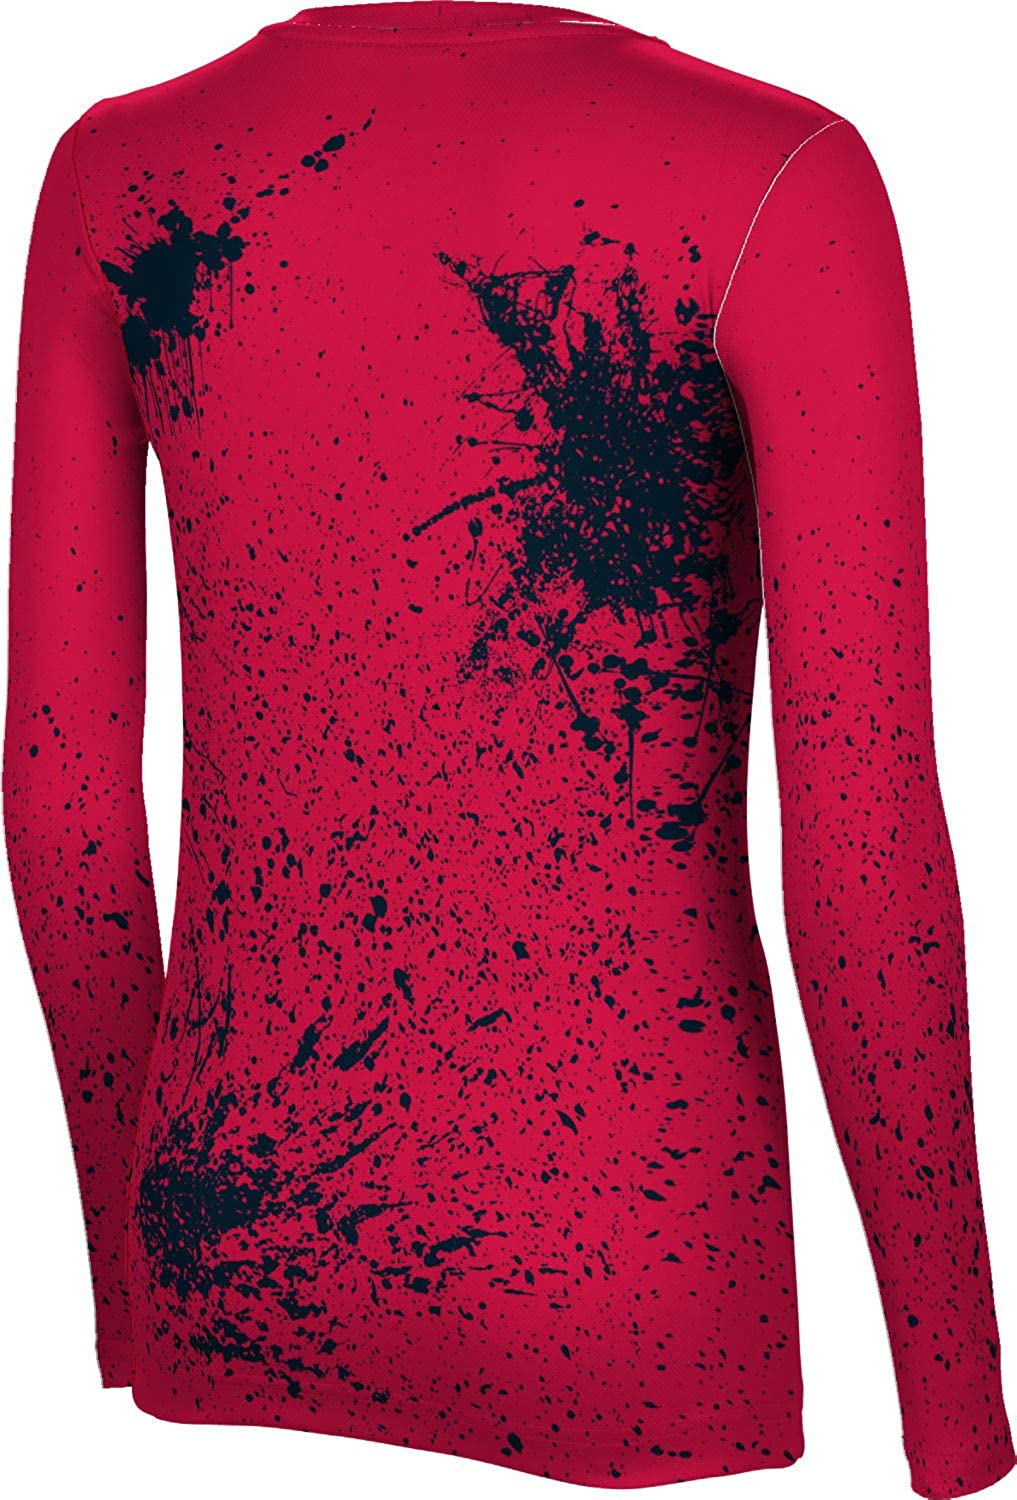 Splatter ProSphere St Johns University Womens Long Sleeve Tee